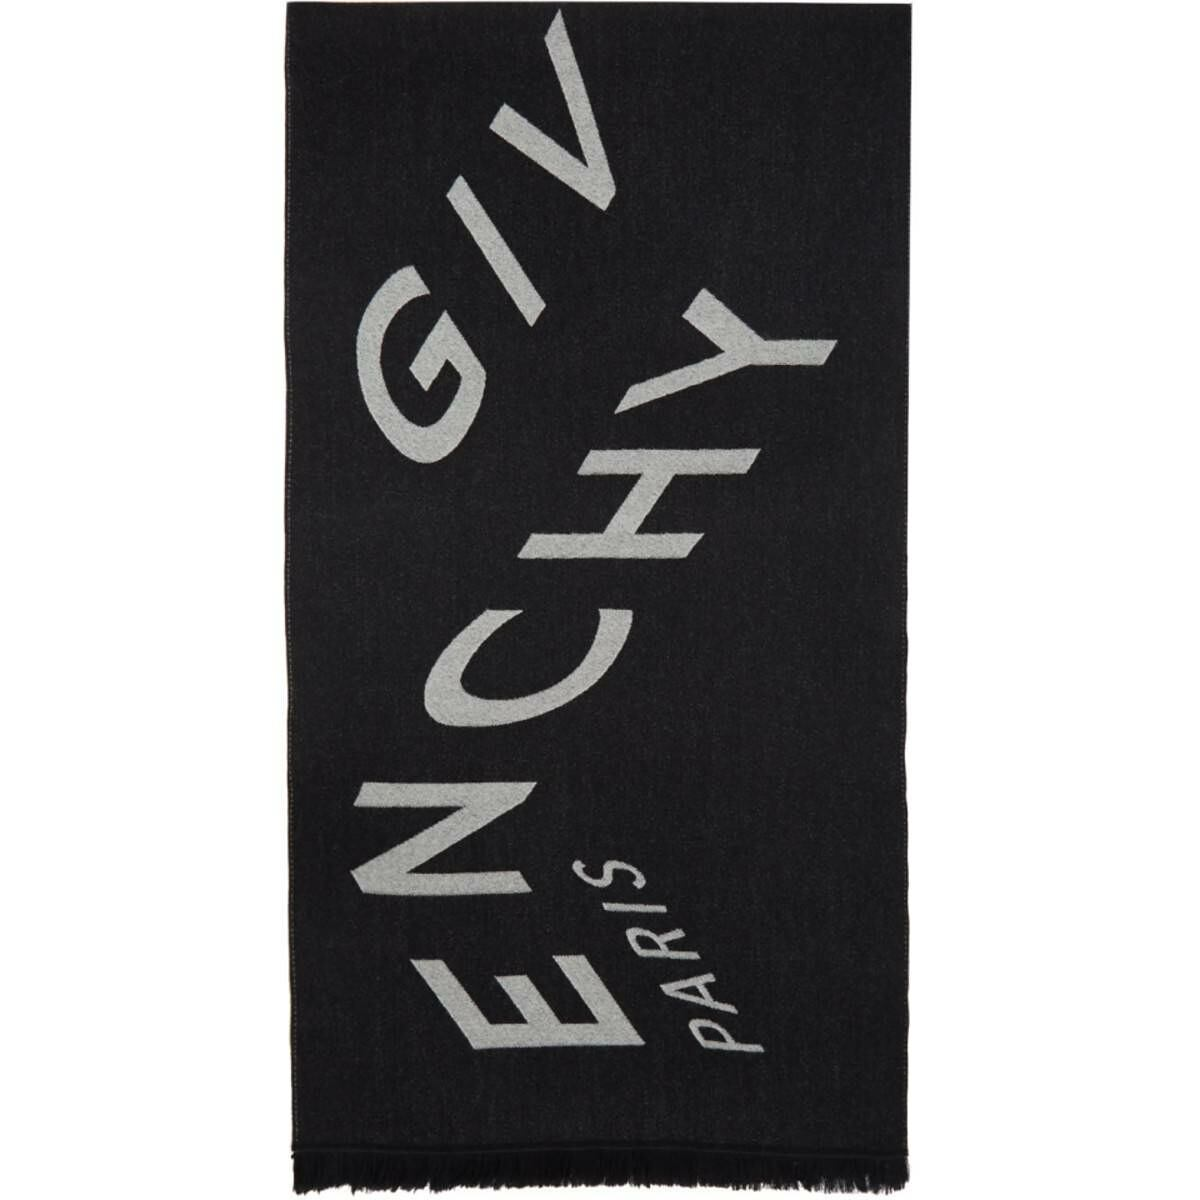 Givenchy Black and White Chevron Scarf Ssense USA MEN Men ACCESSORIES Mens SCARFS